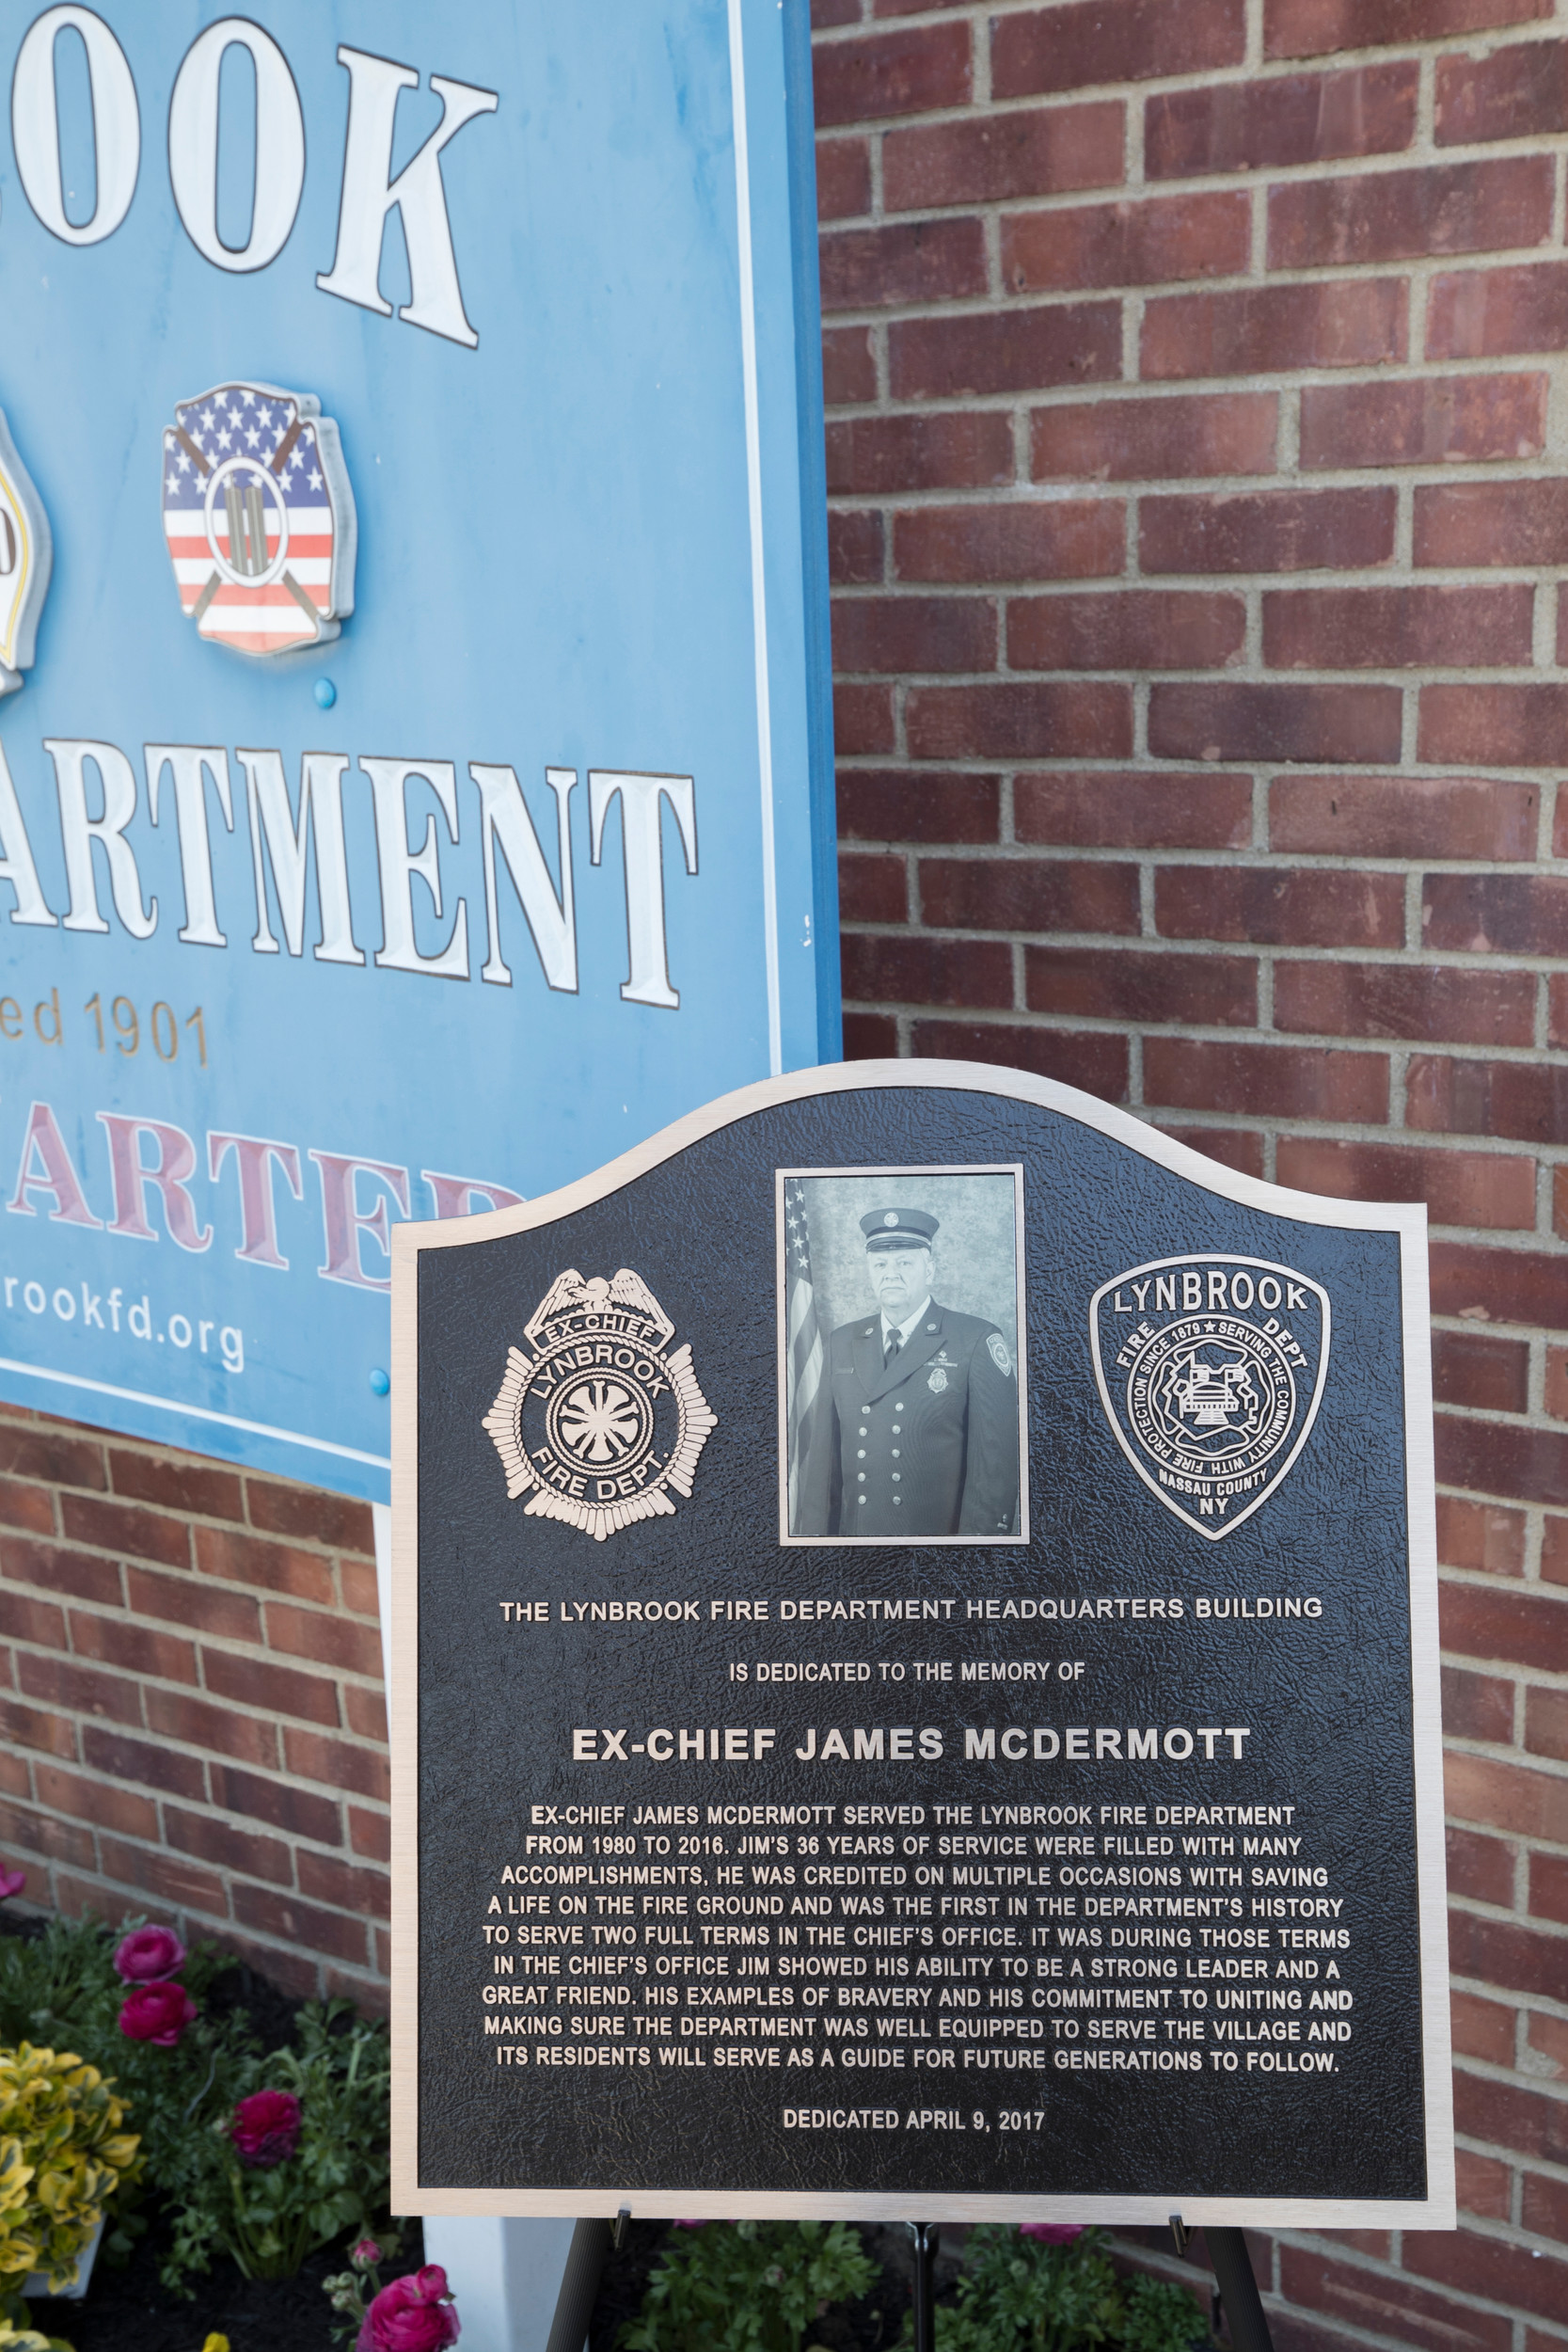 A plaque detailing James McDermott's career was installed on the exterior of the Lynbrook Fire Department's headquarters on Wright Avenue.